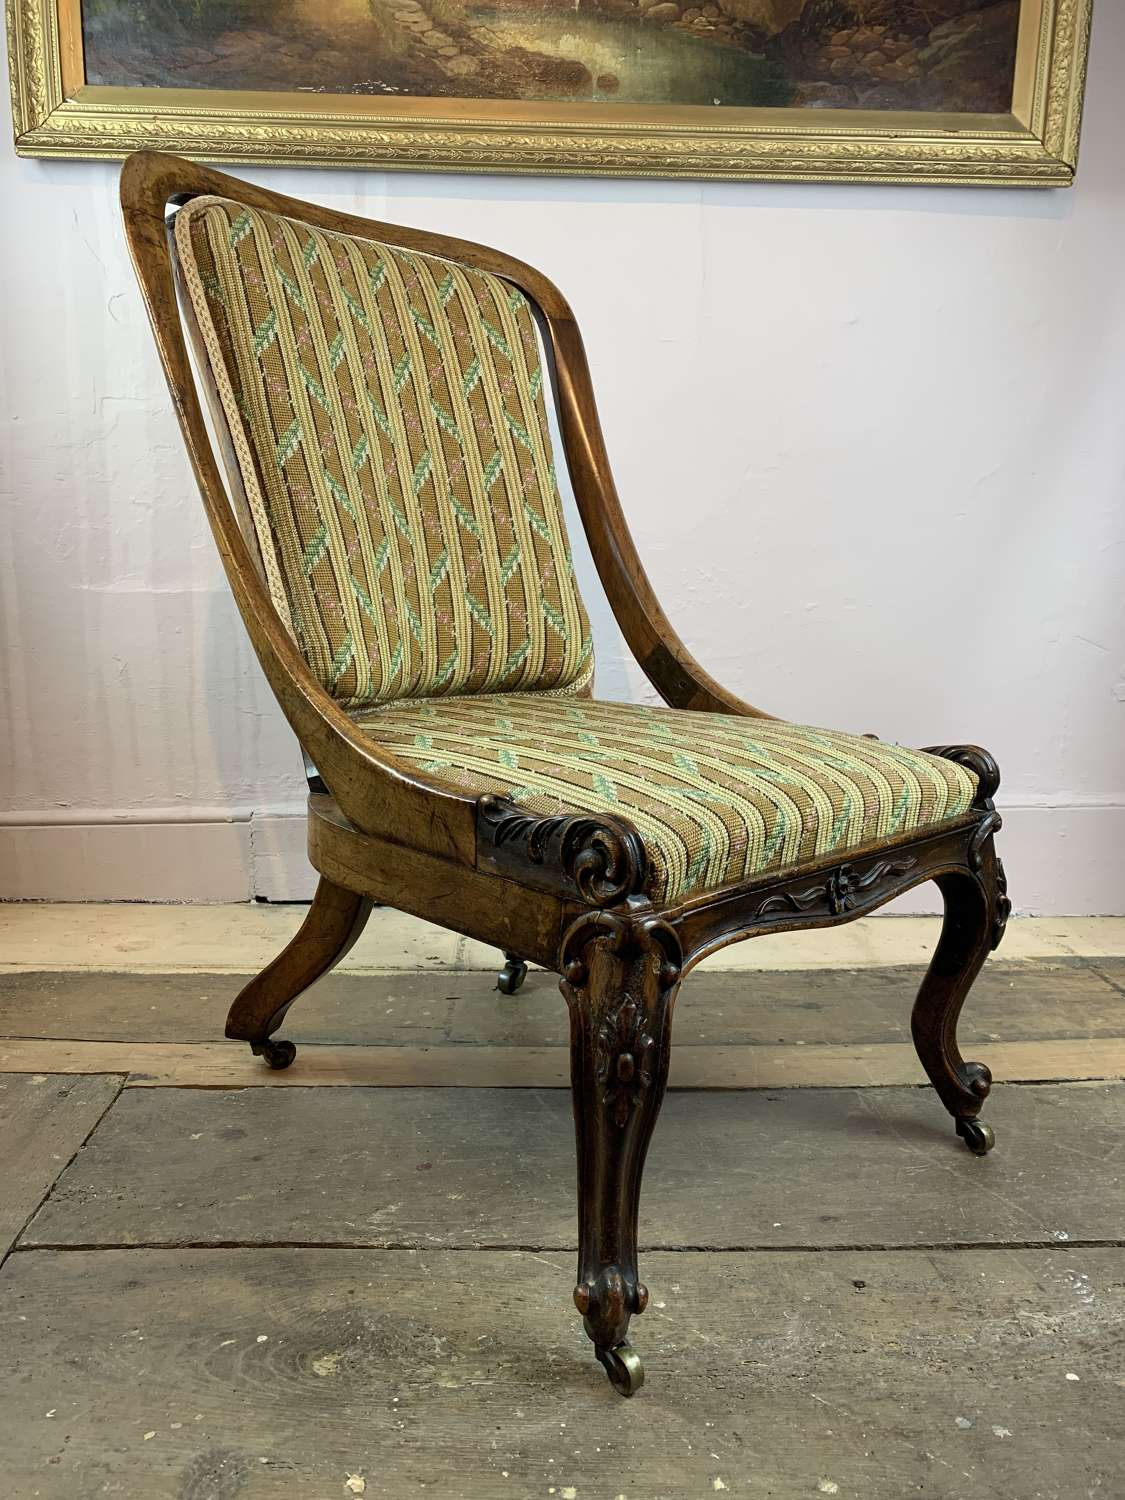 Victorian Mahogany Framed Occasional Chair with Needlework Upholstery